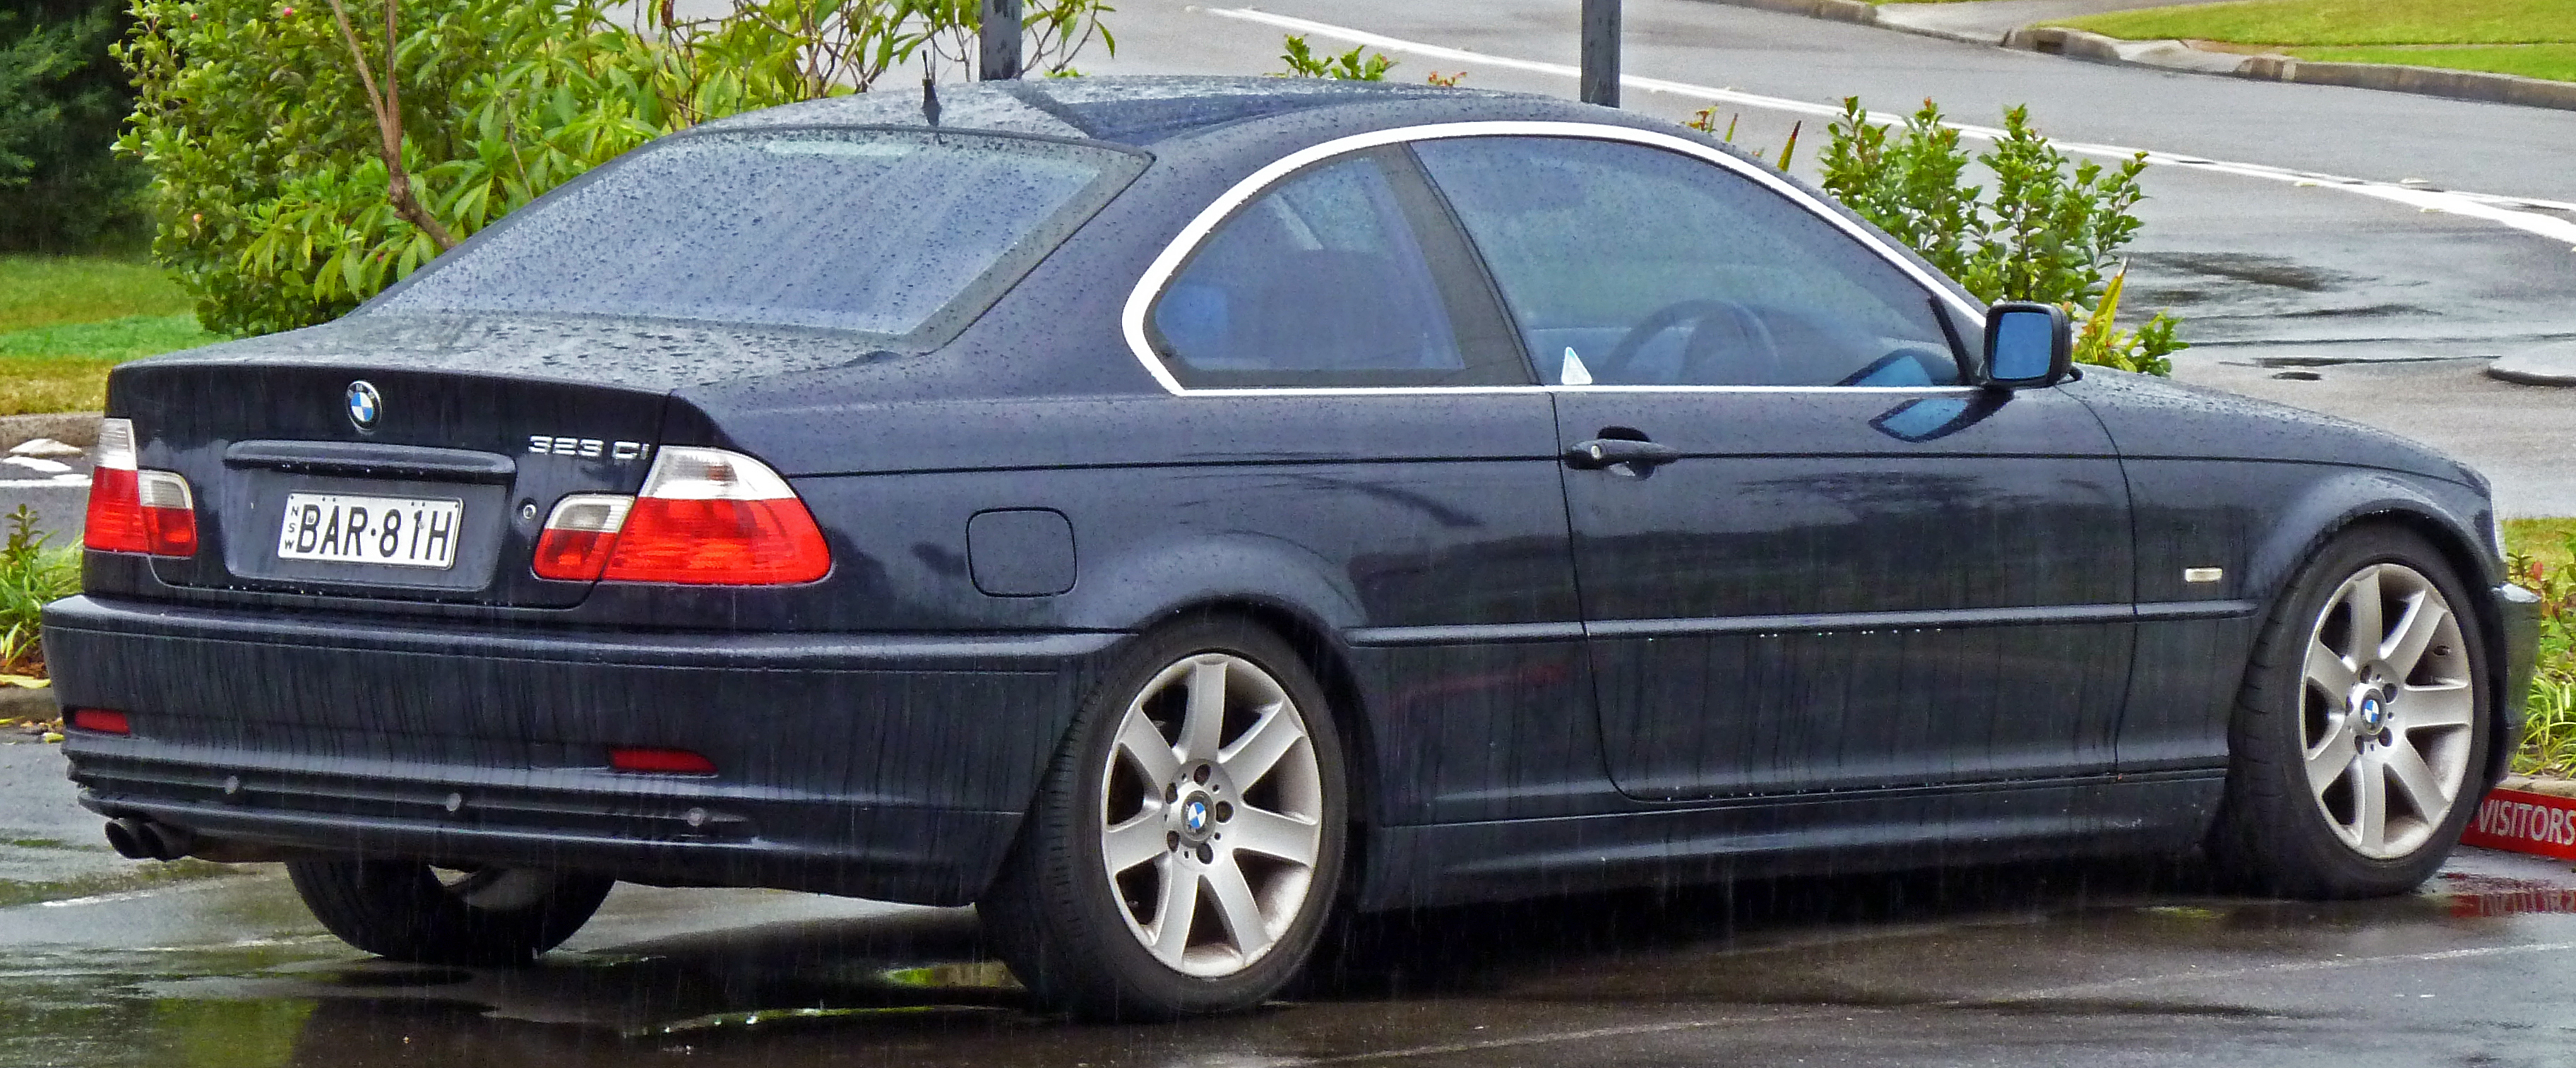 Bmw 323ci photo - 1